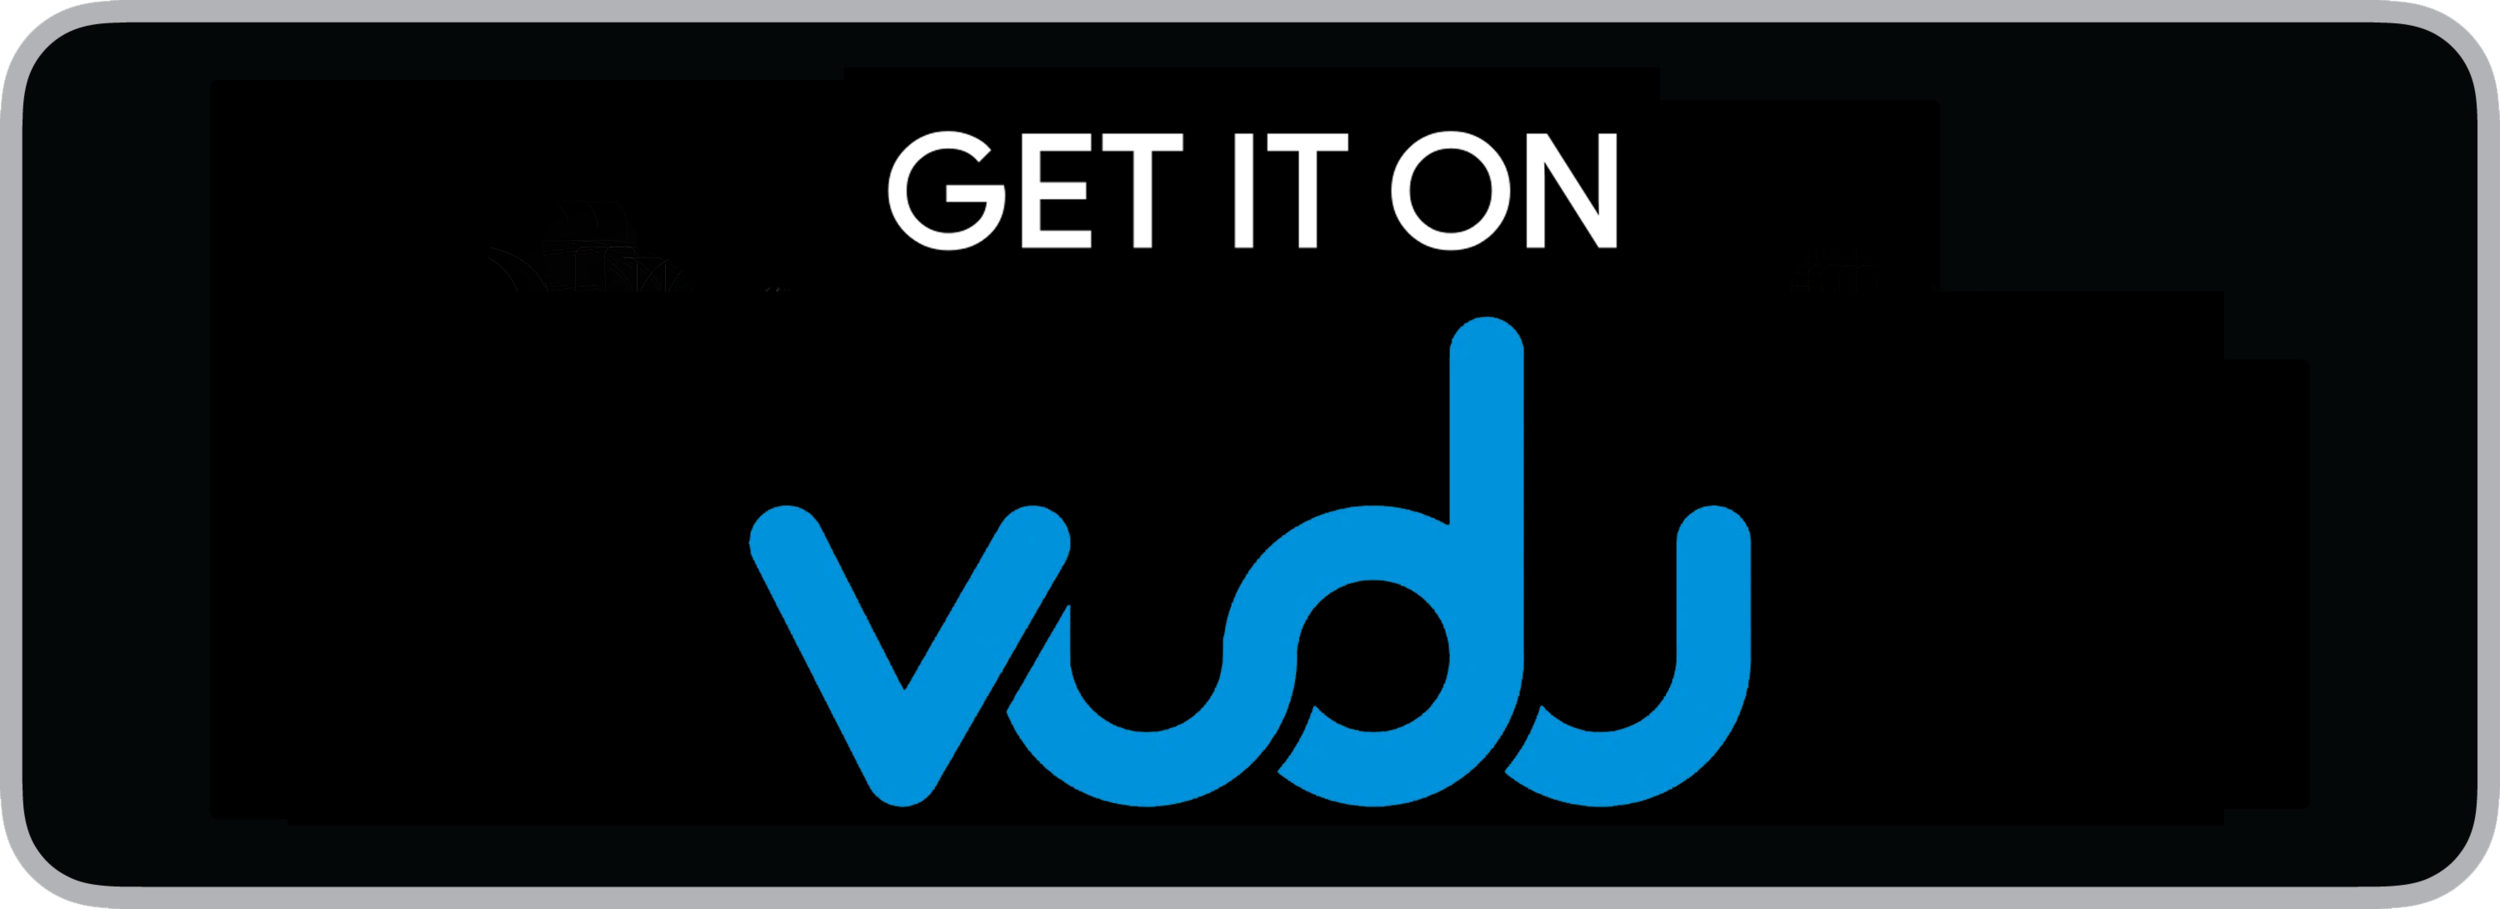 Get_it_on_VUDU_Badge_3000x1091.png